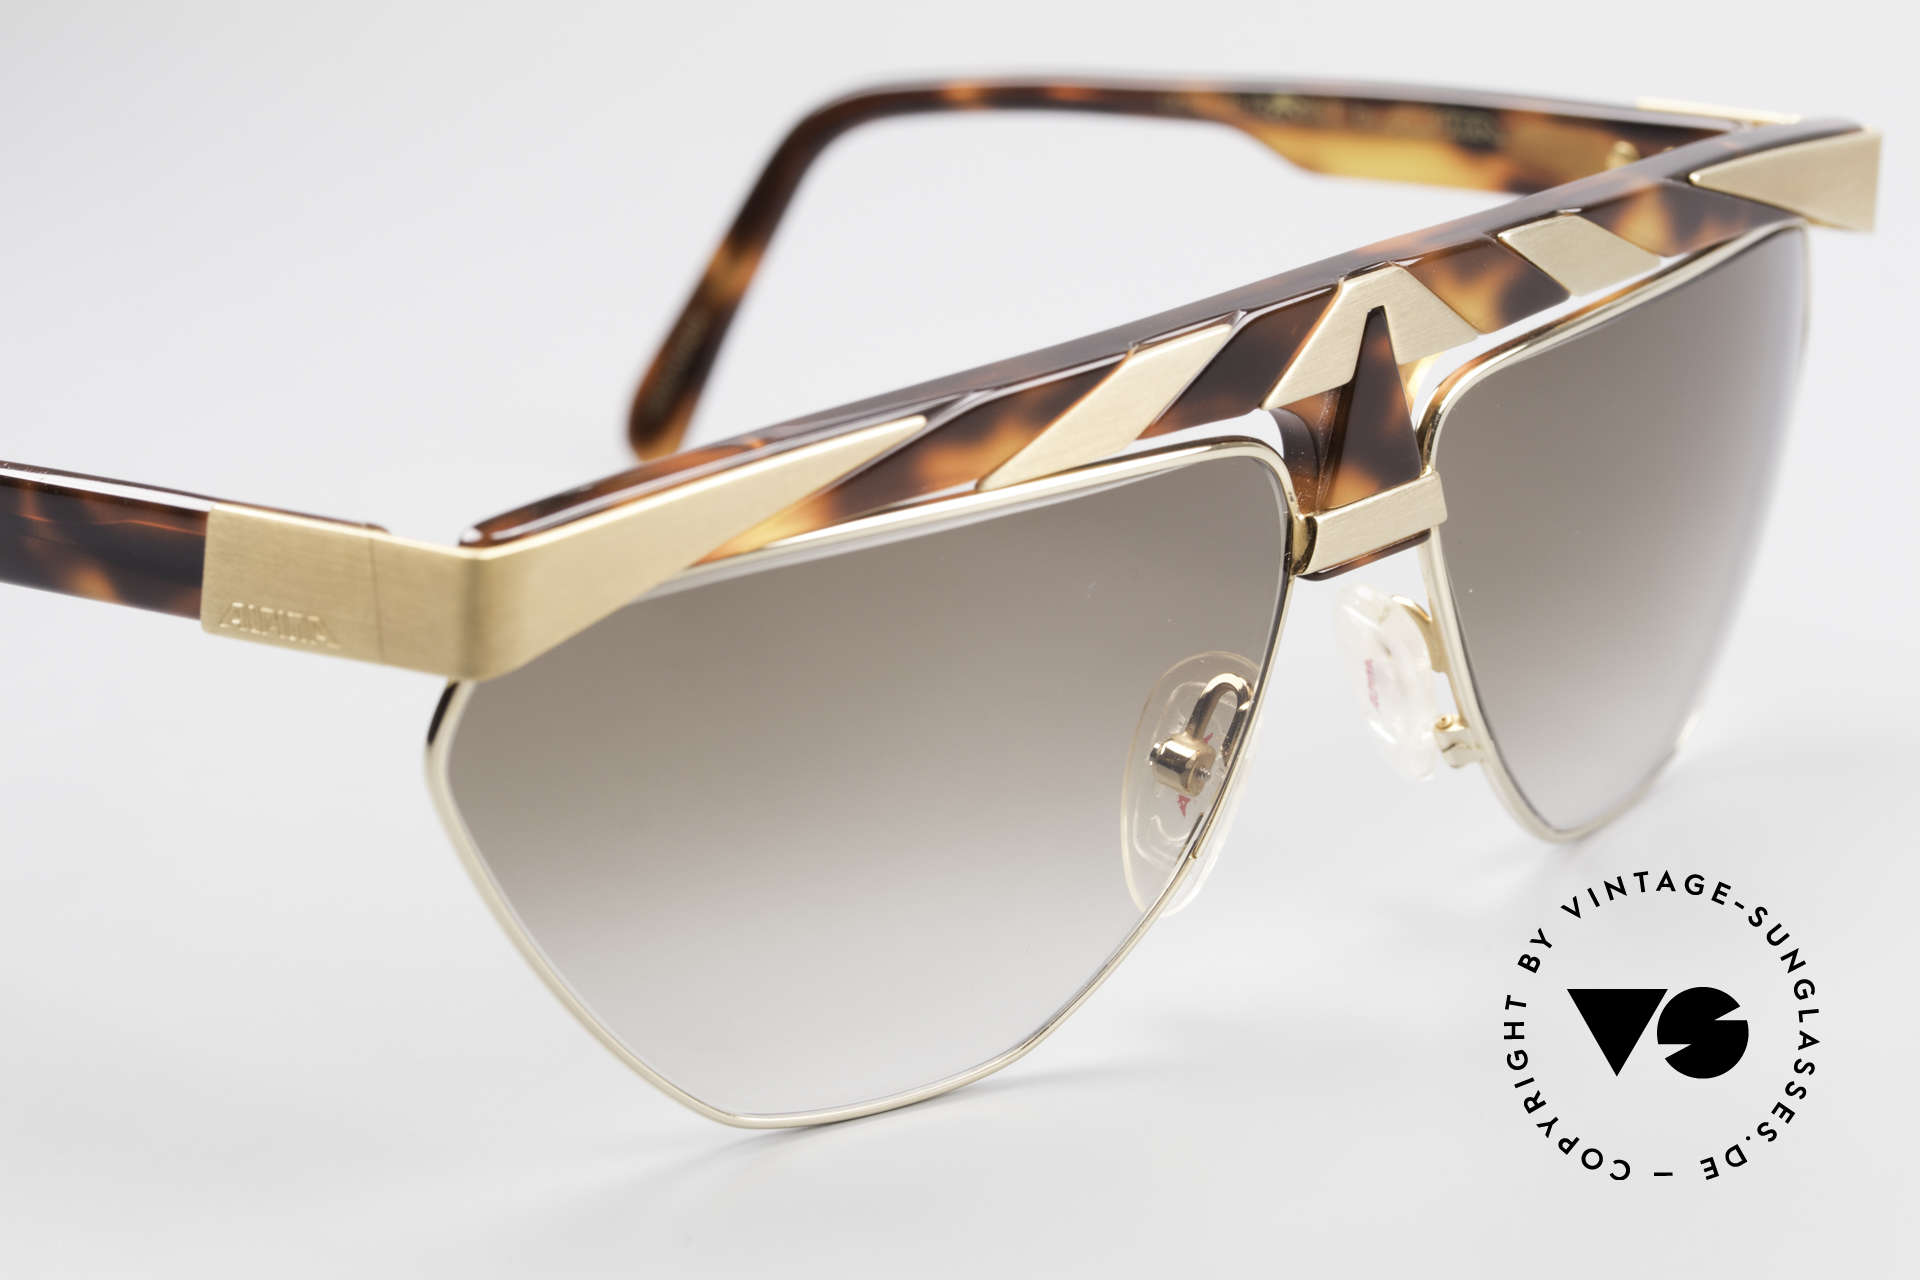 Alpina G84 80's Sunglasses Gold Plated, unworn (like all our rare vintage ALPINA sunglasses), Made for Men and Women